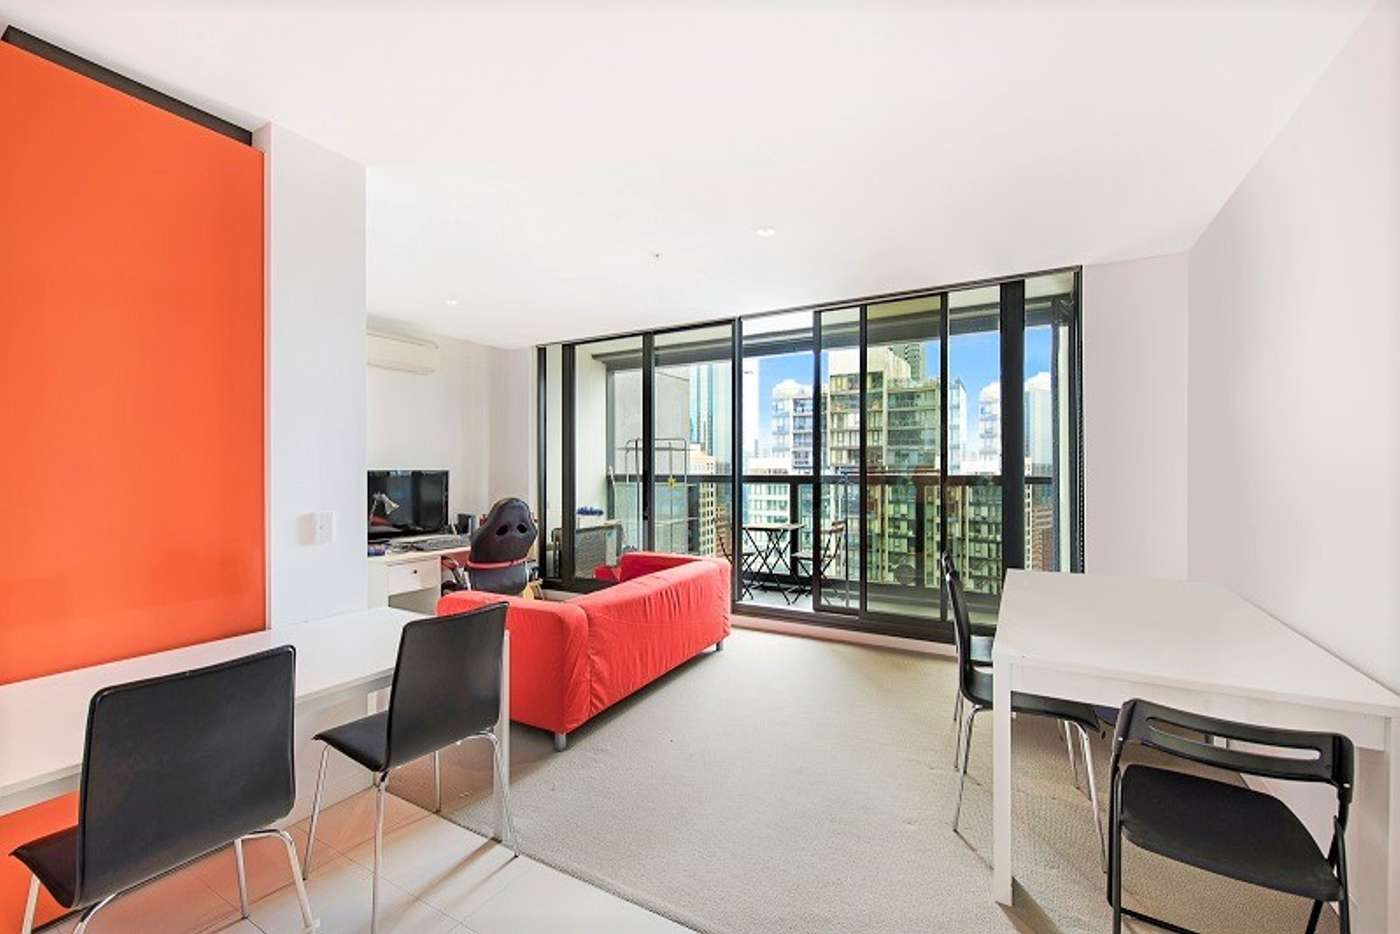 Main view of Homely apartment listing, 2406/639 Lonsdale st, Melbourne VIC 3000